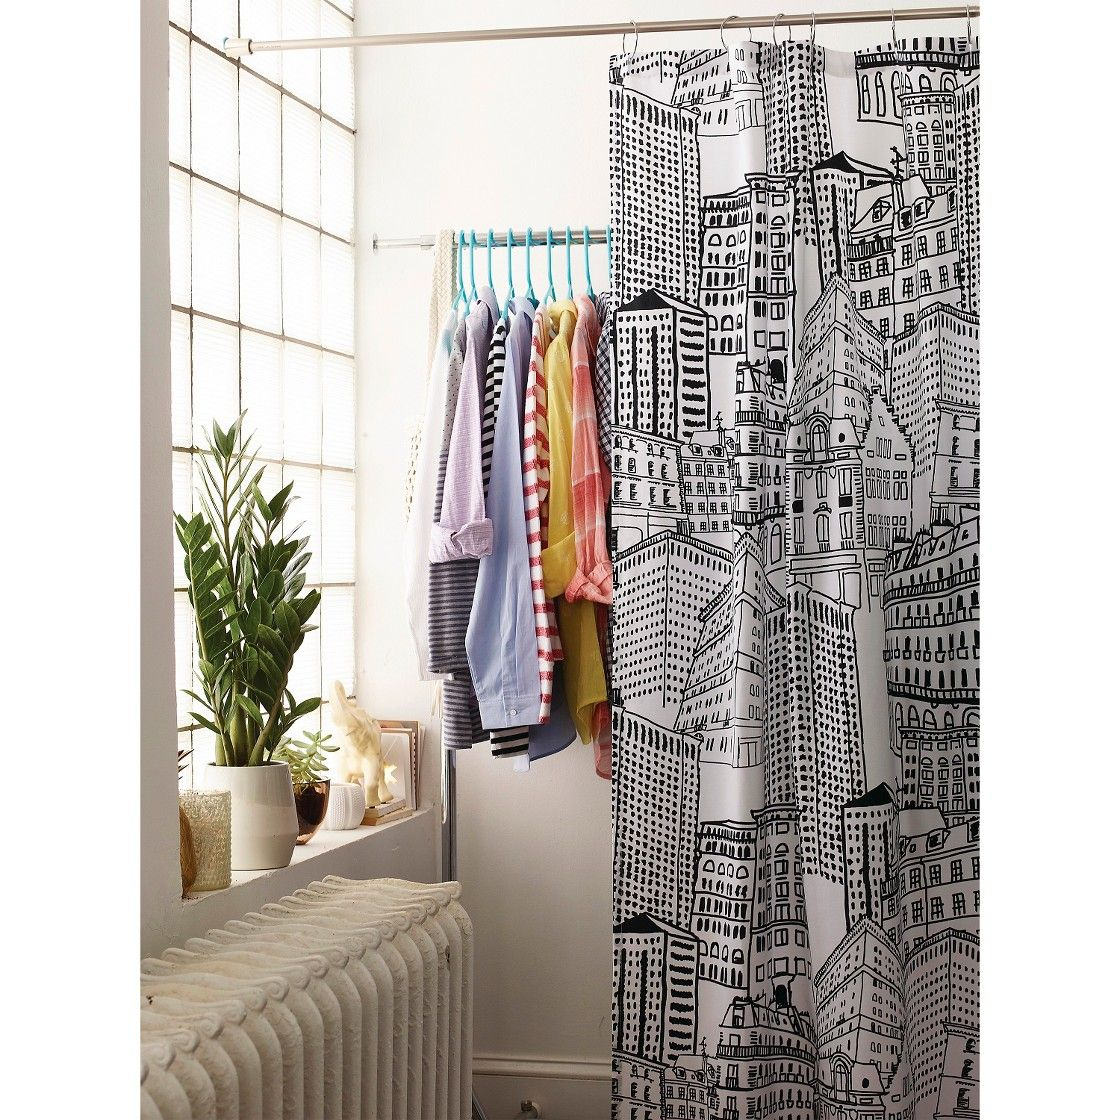 Shower curtain from Target being used as a room divider